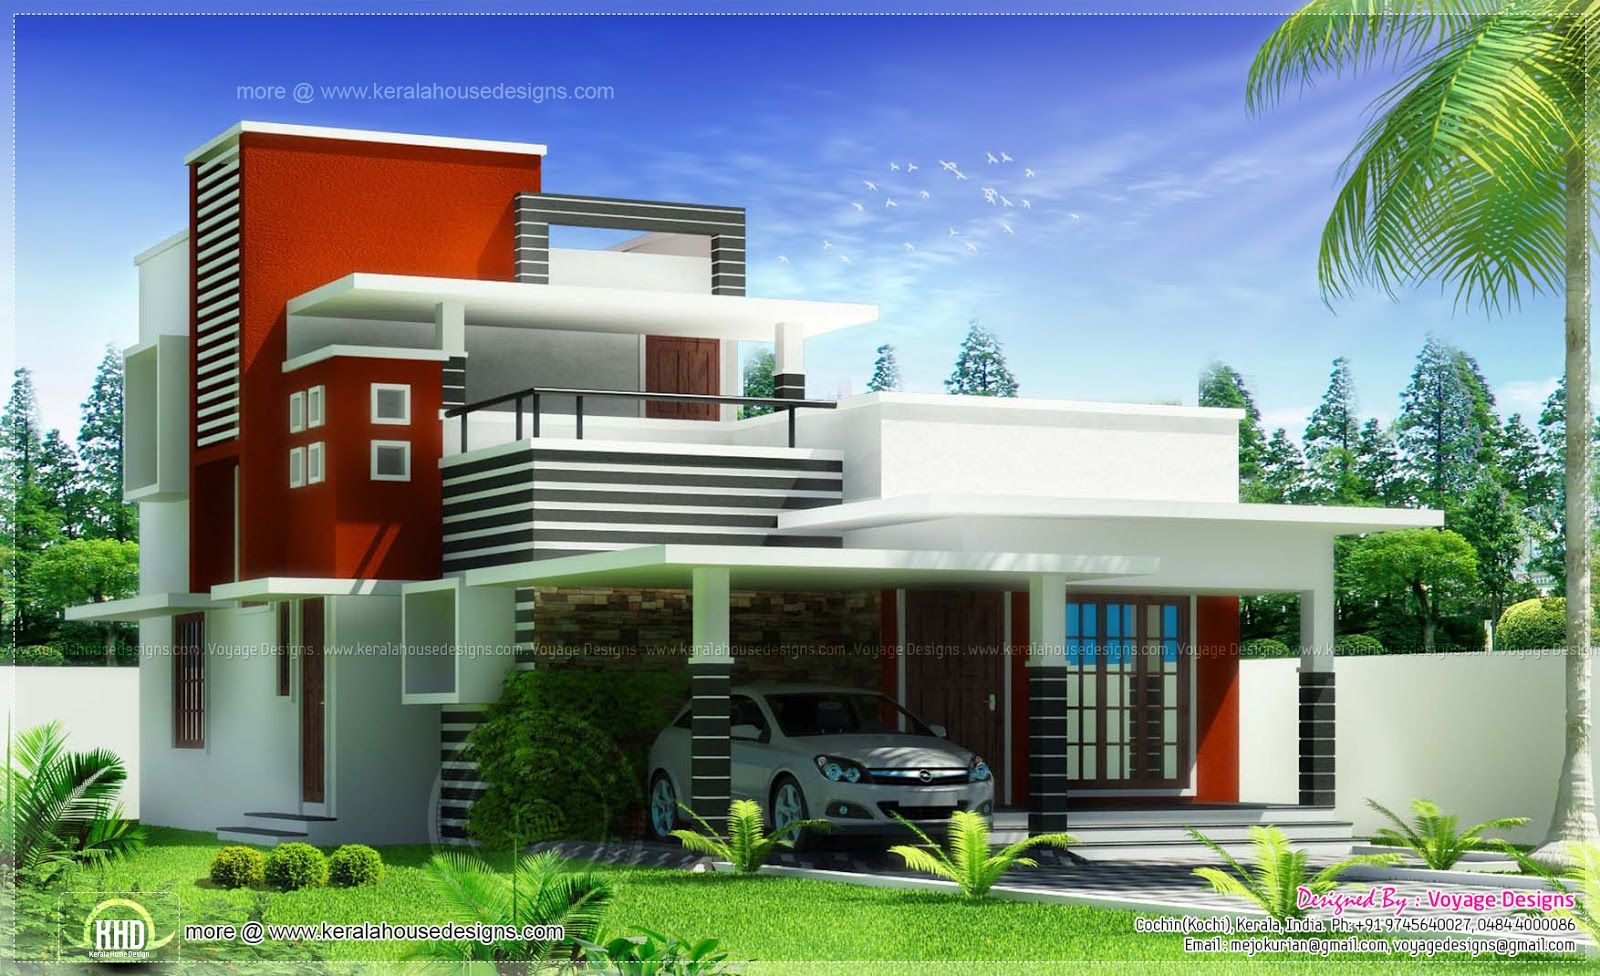 Kerala house designs architecture pinterest kerala for New house design ideas